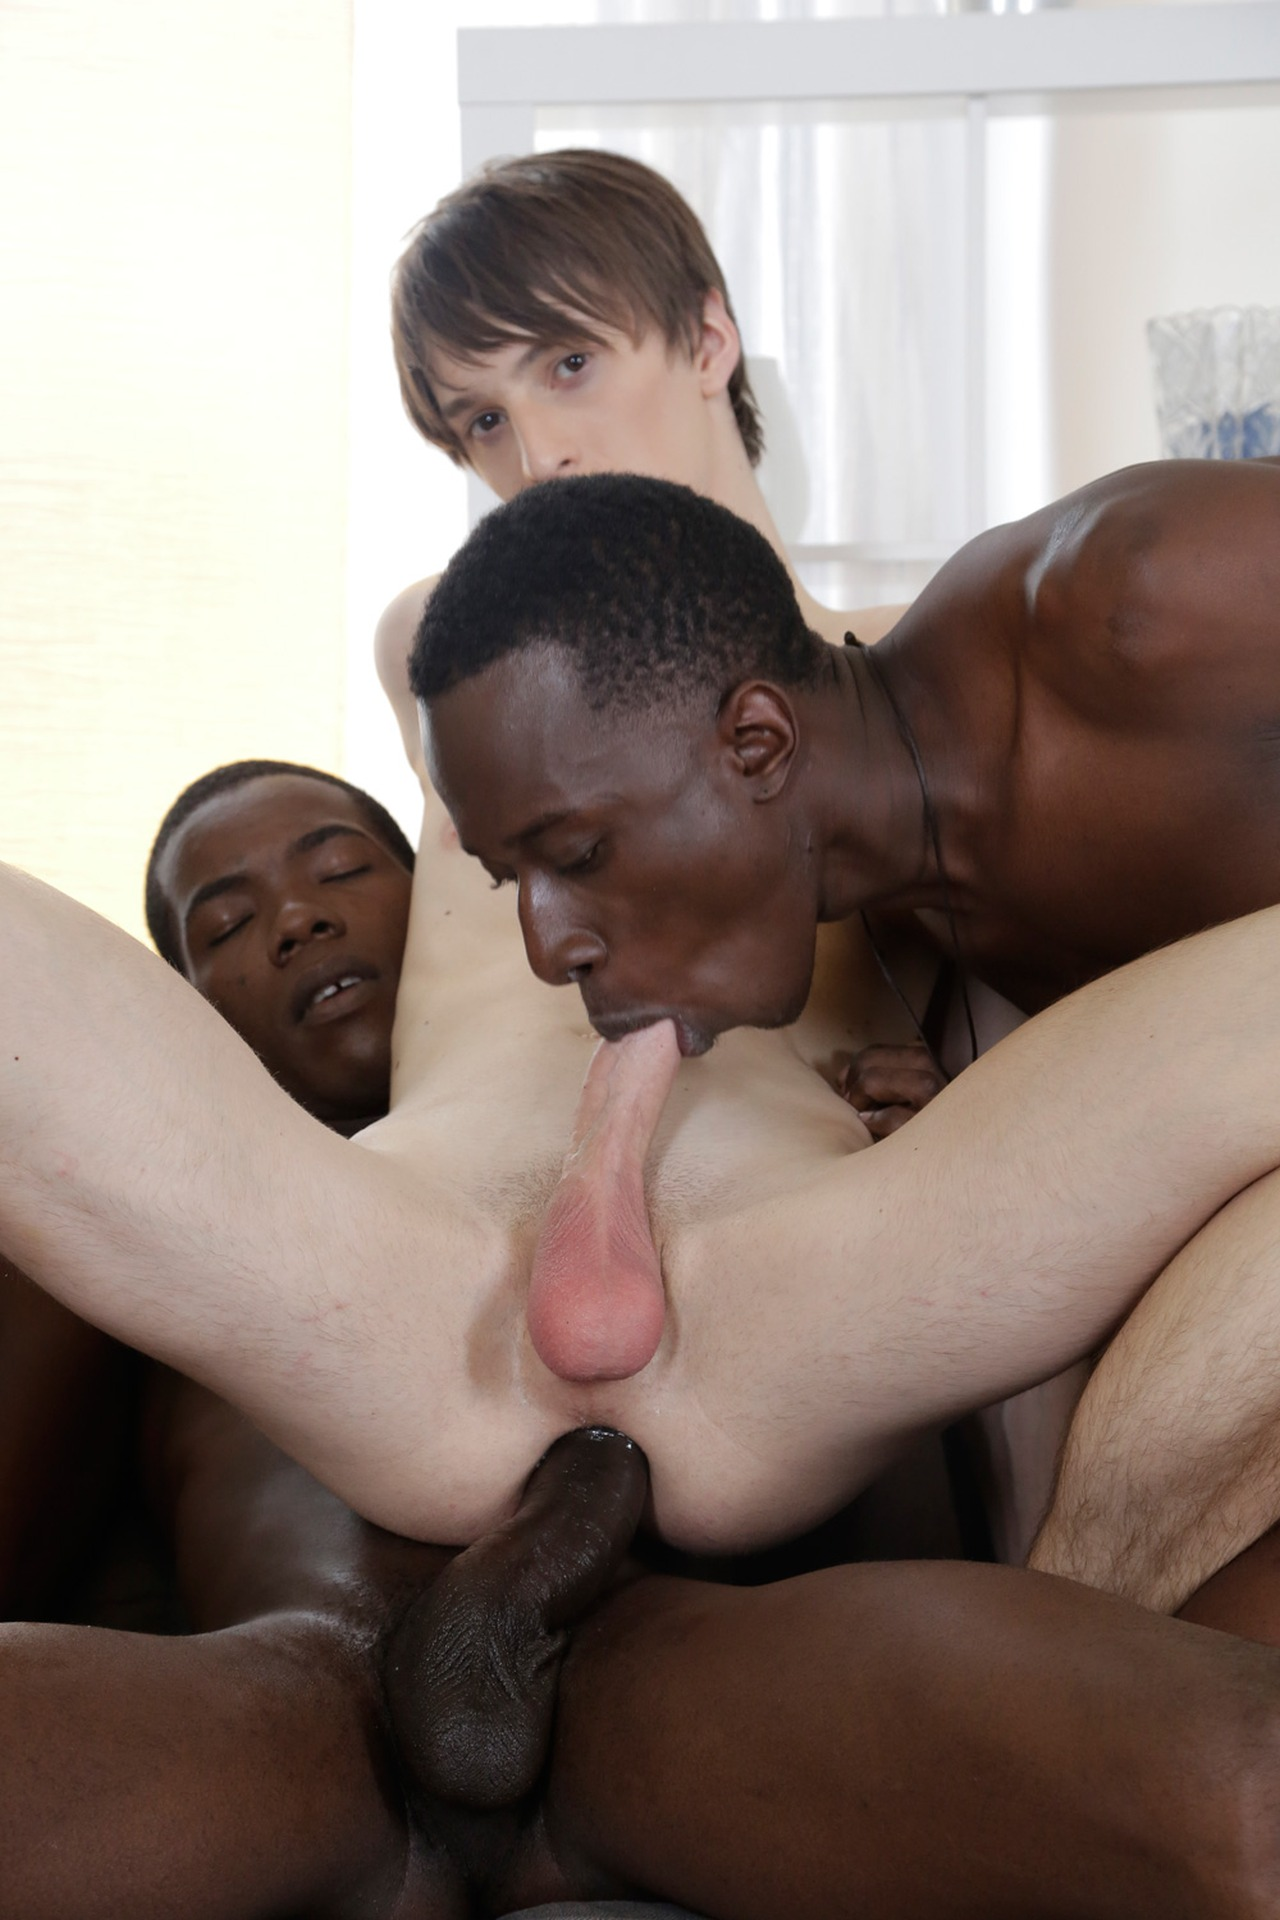 hd gay sex tube offentlig